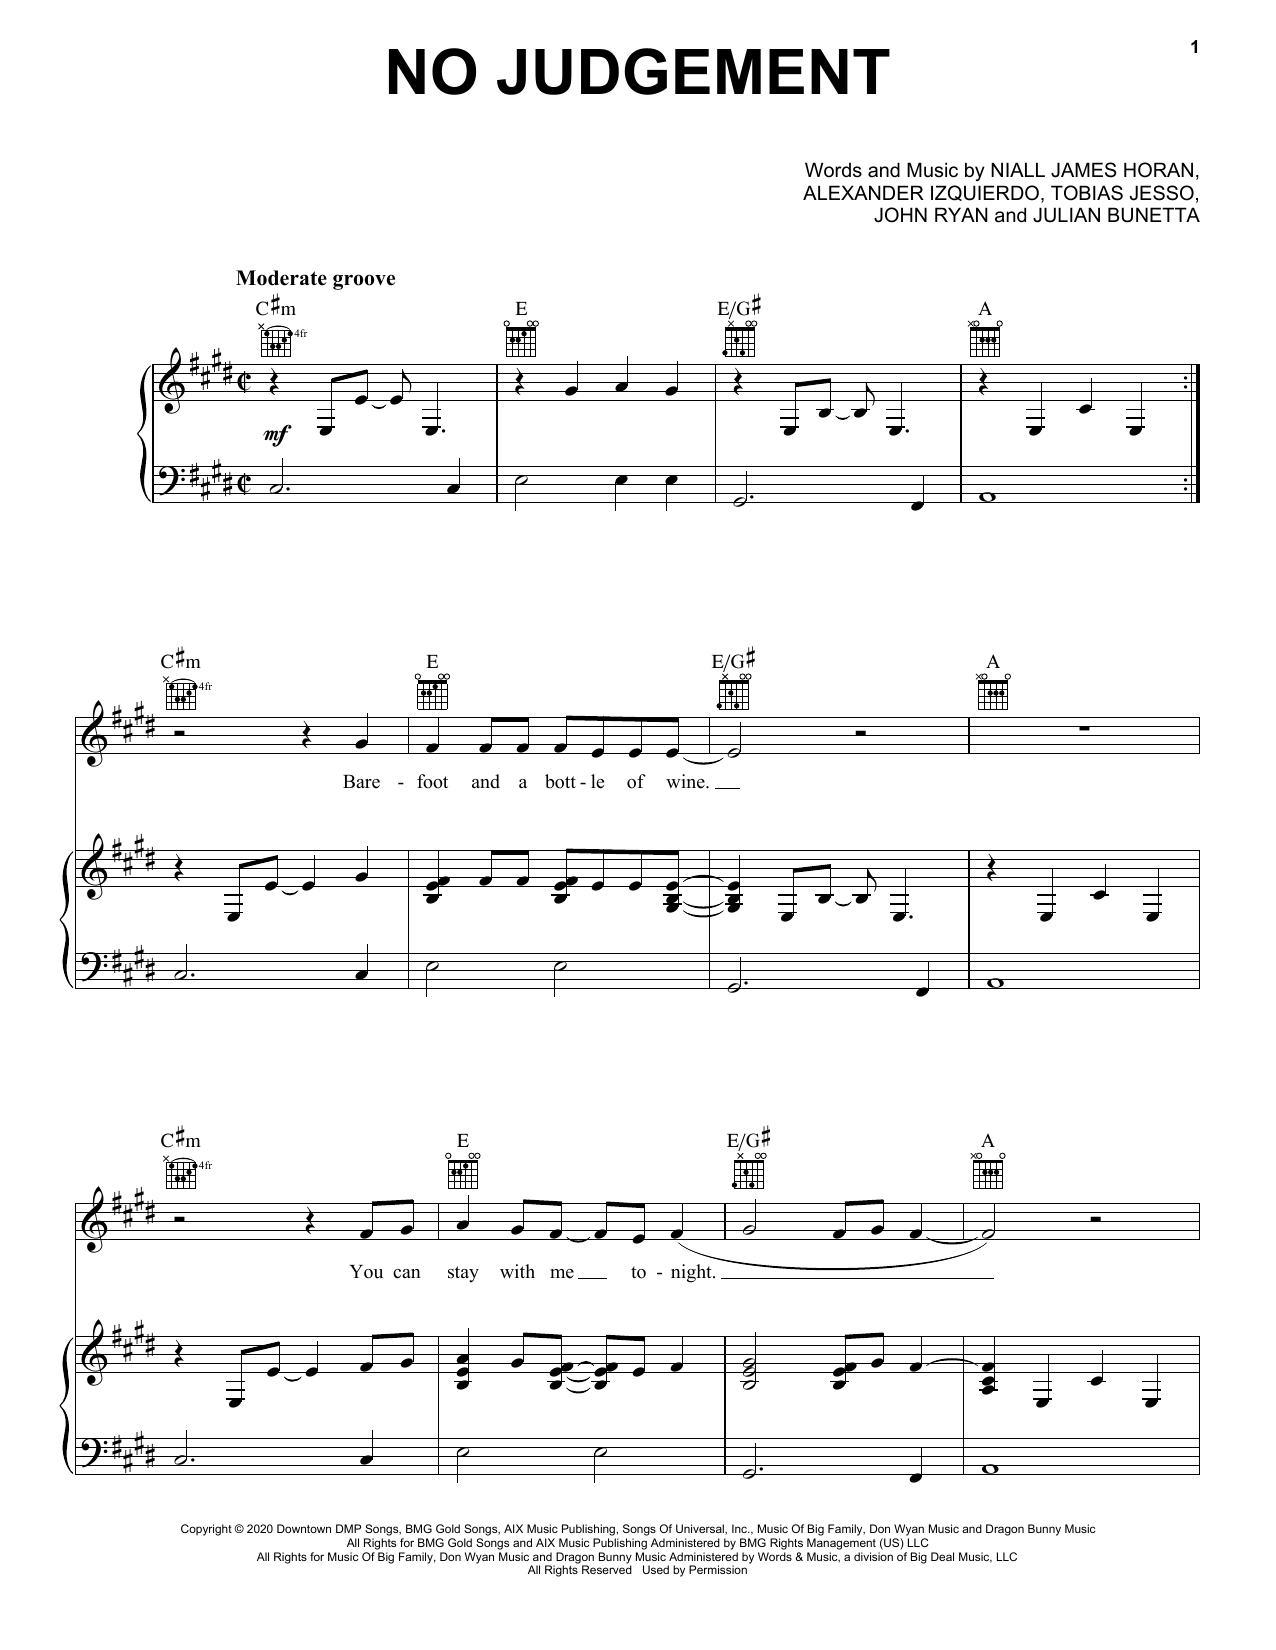 Niall Horan No Judgement sheet music notes and chords. Download Printable PDF.